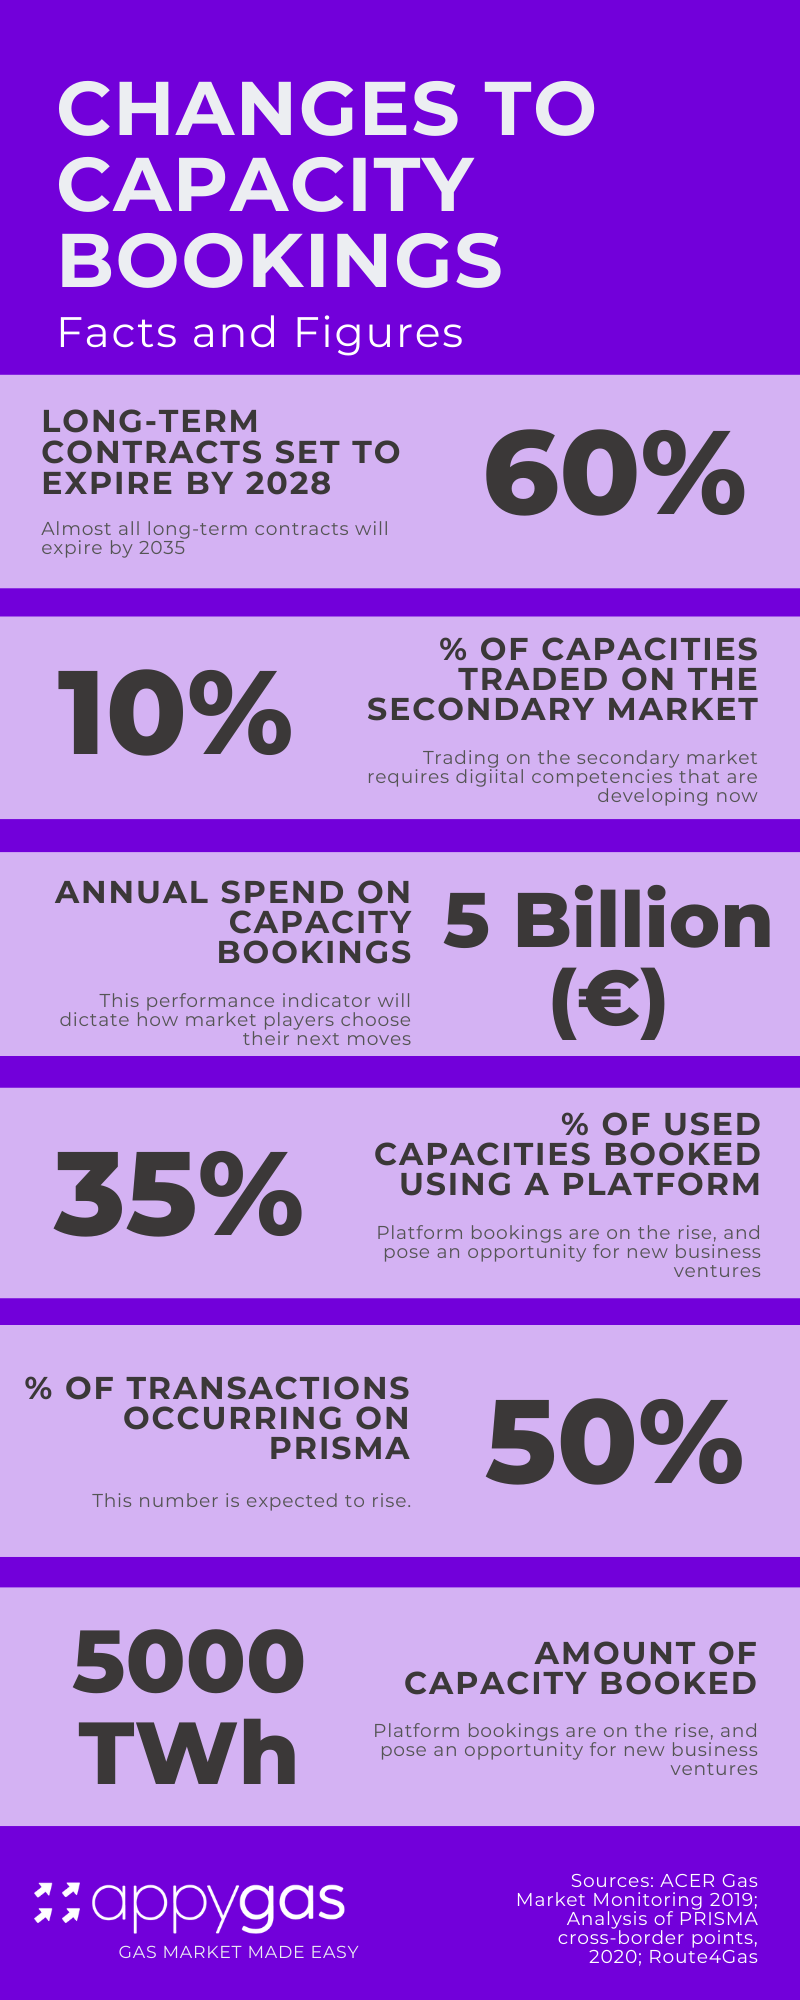 infographic with statistics about short term and long term capacity bookings from PRISMA, ACER, gas market data